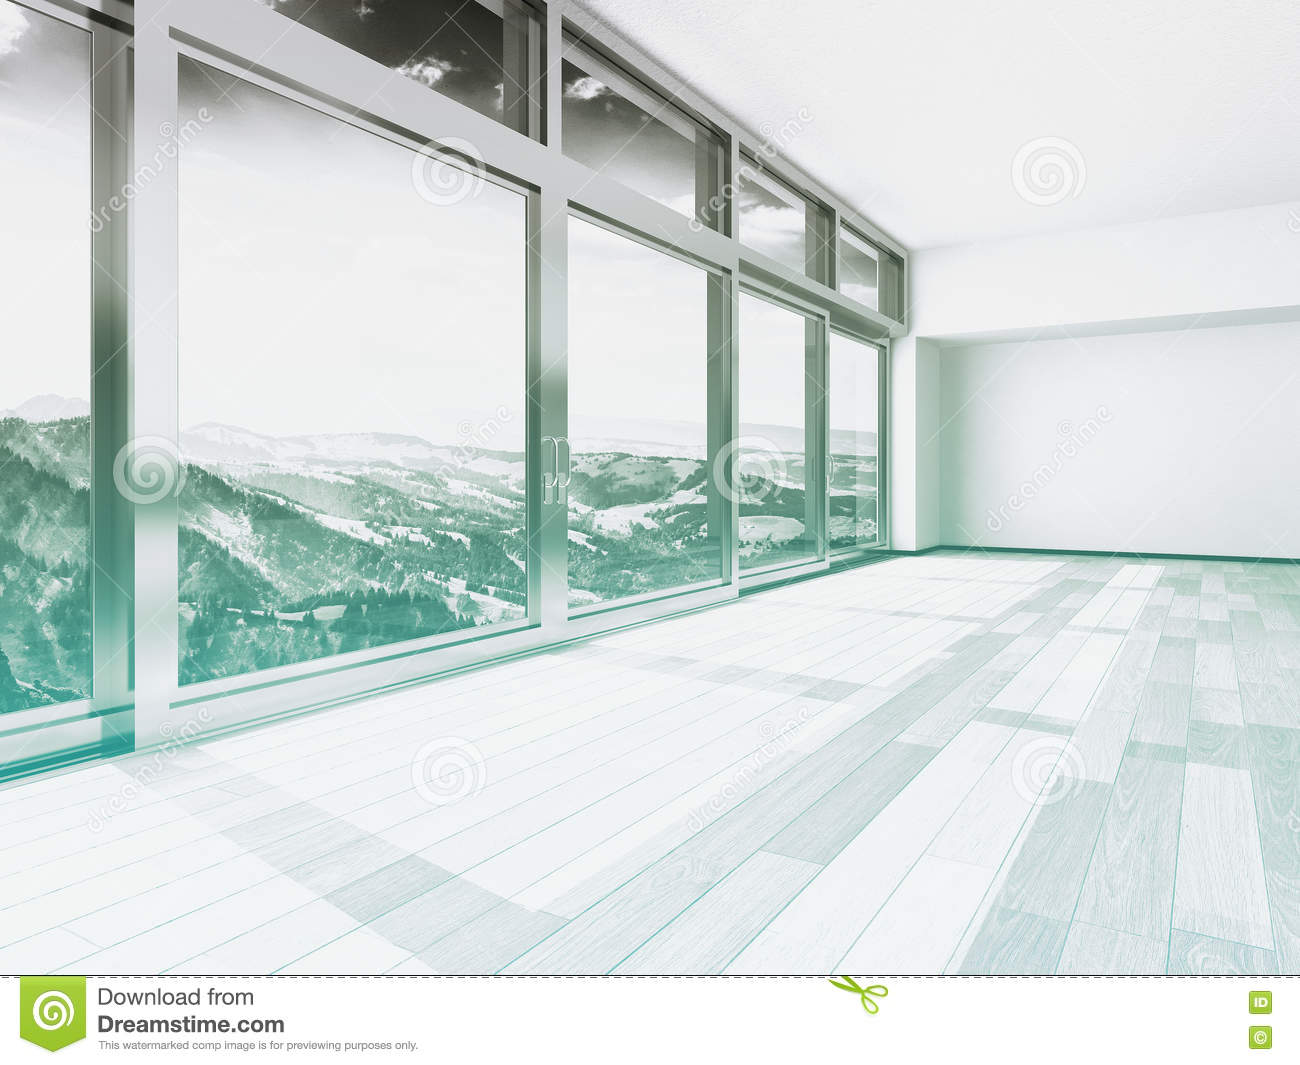 Architectural Building Interior with Glass Windows